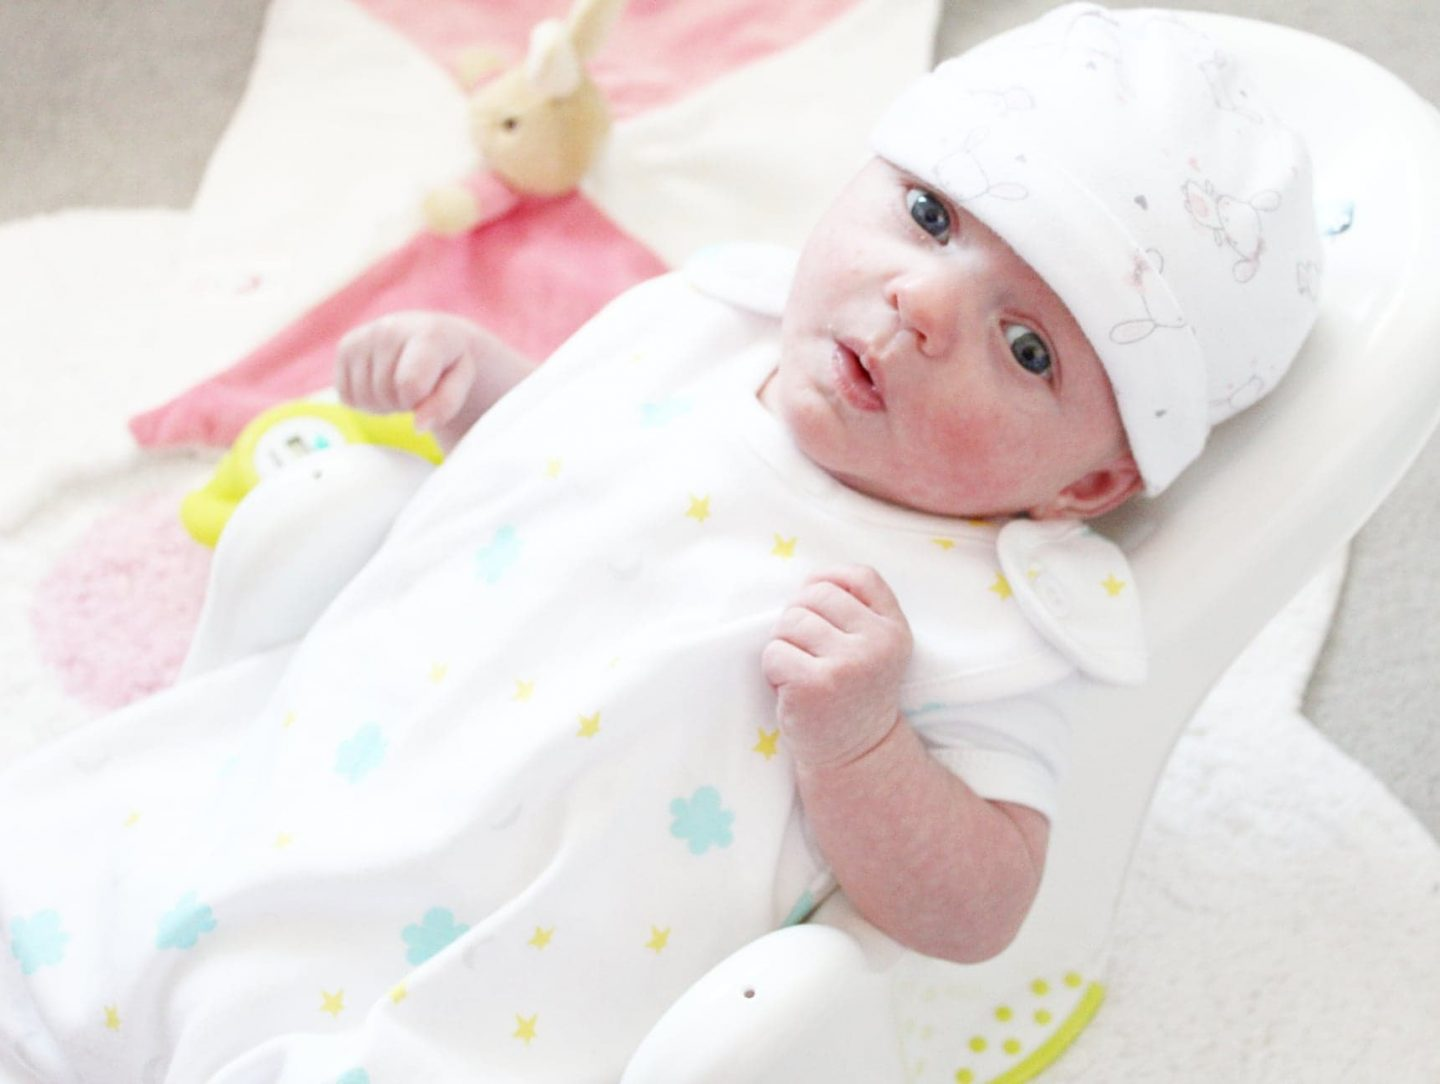 Safety 1st | Bath Time Essentials for Your Newborn